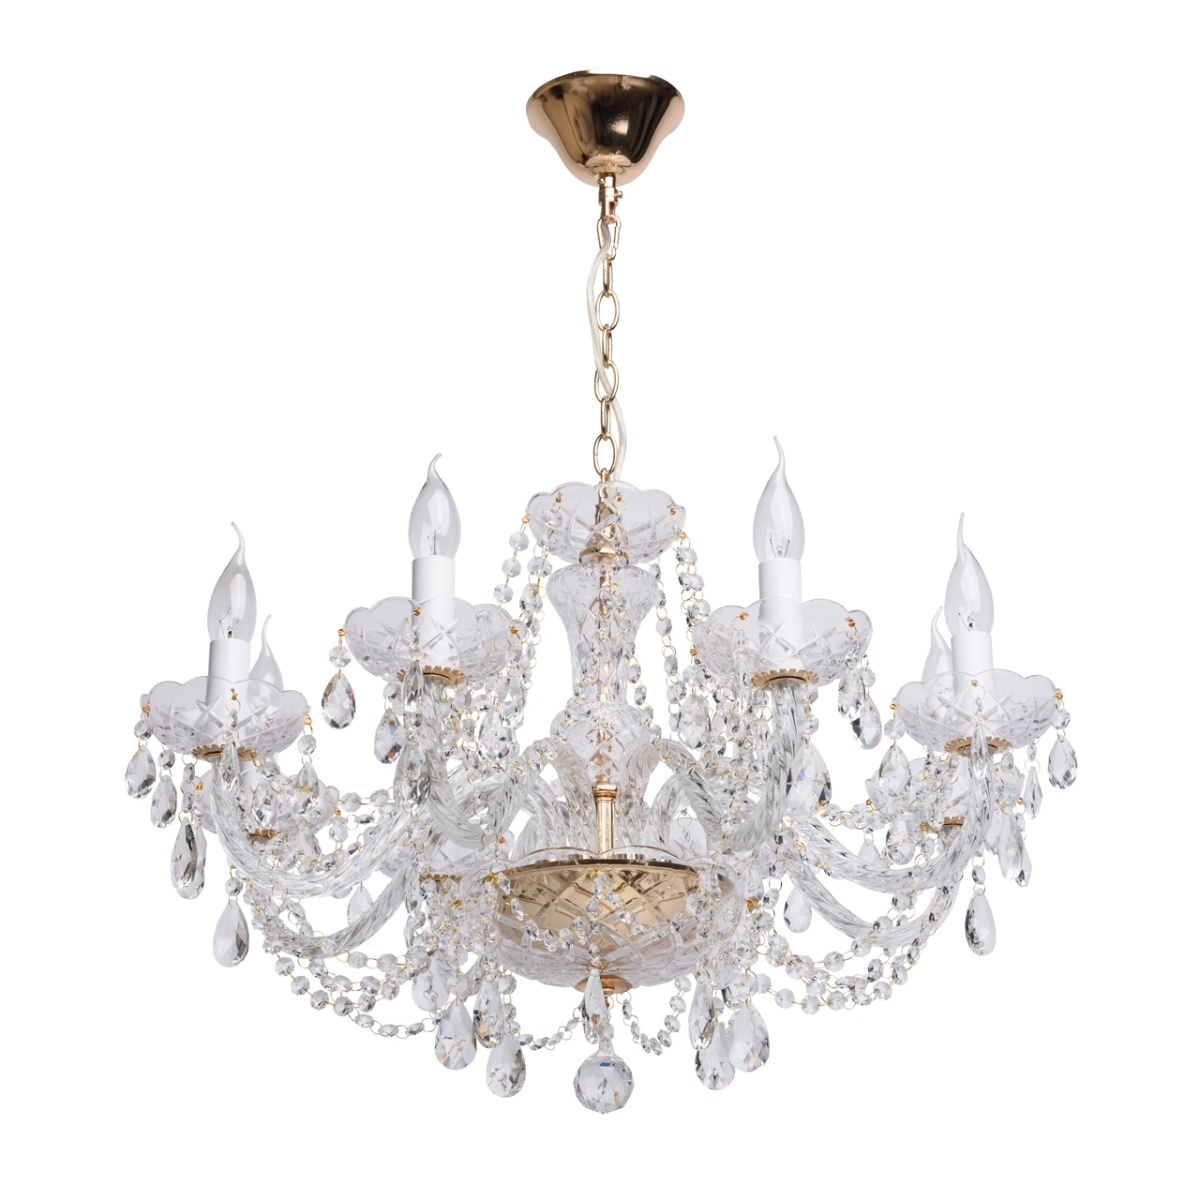 Candelabru MW-Light Crystal 367012708 imagine